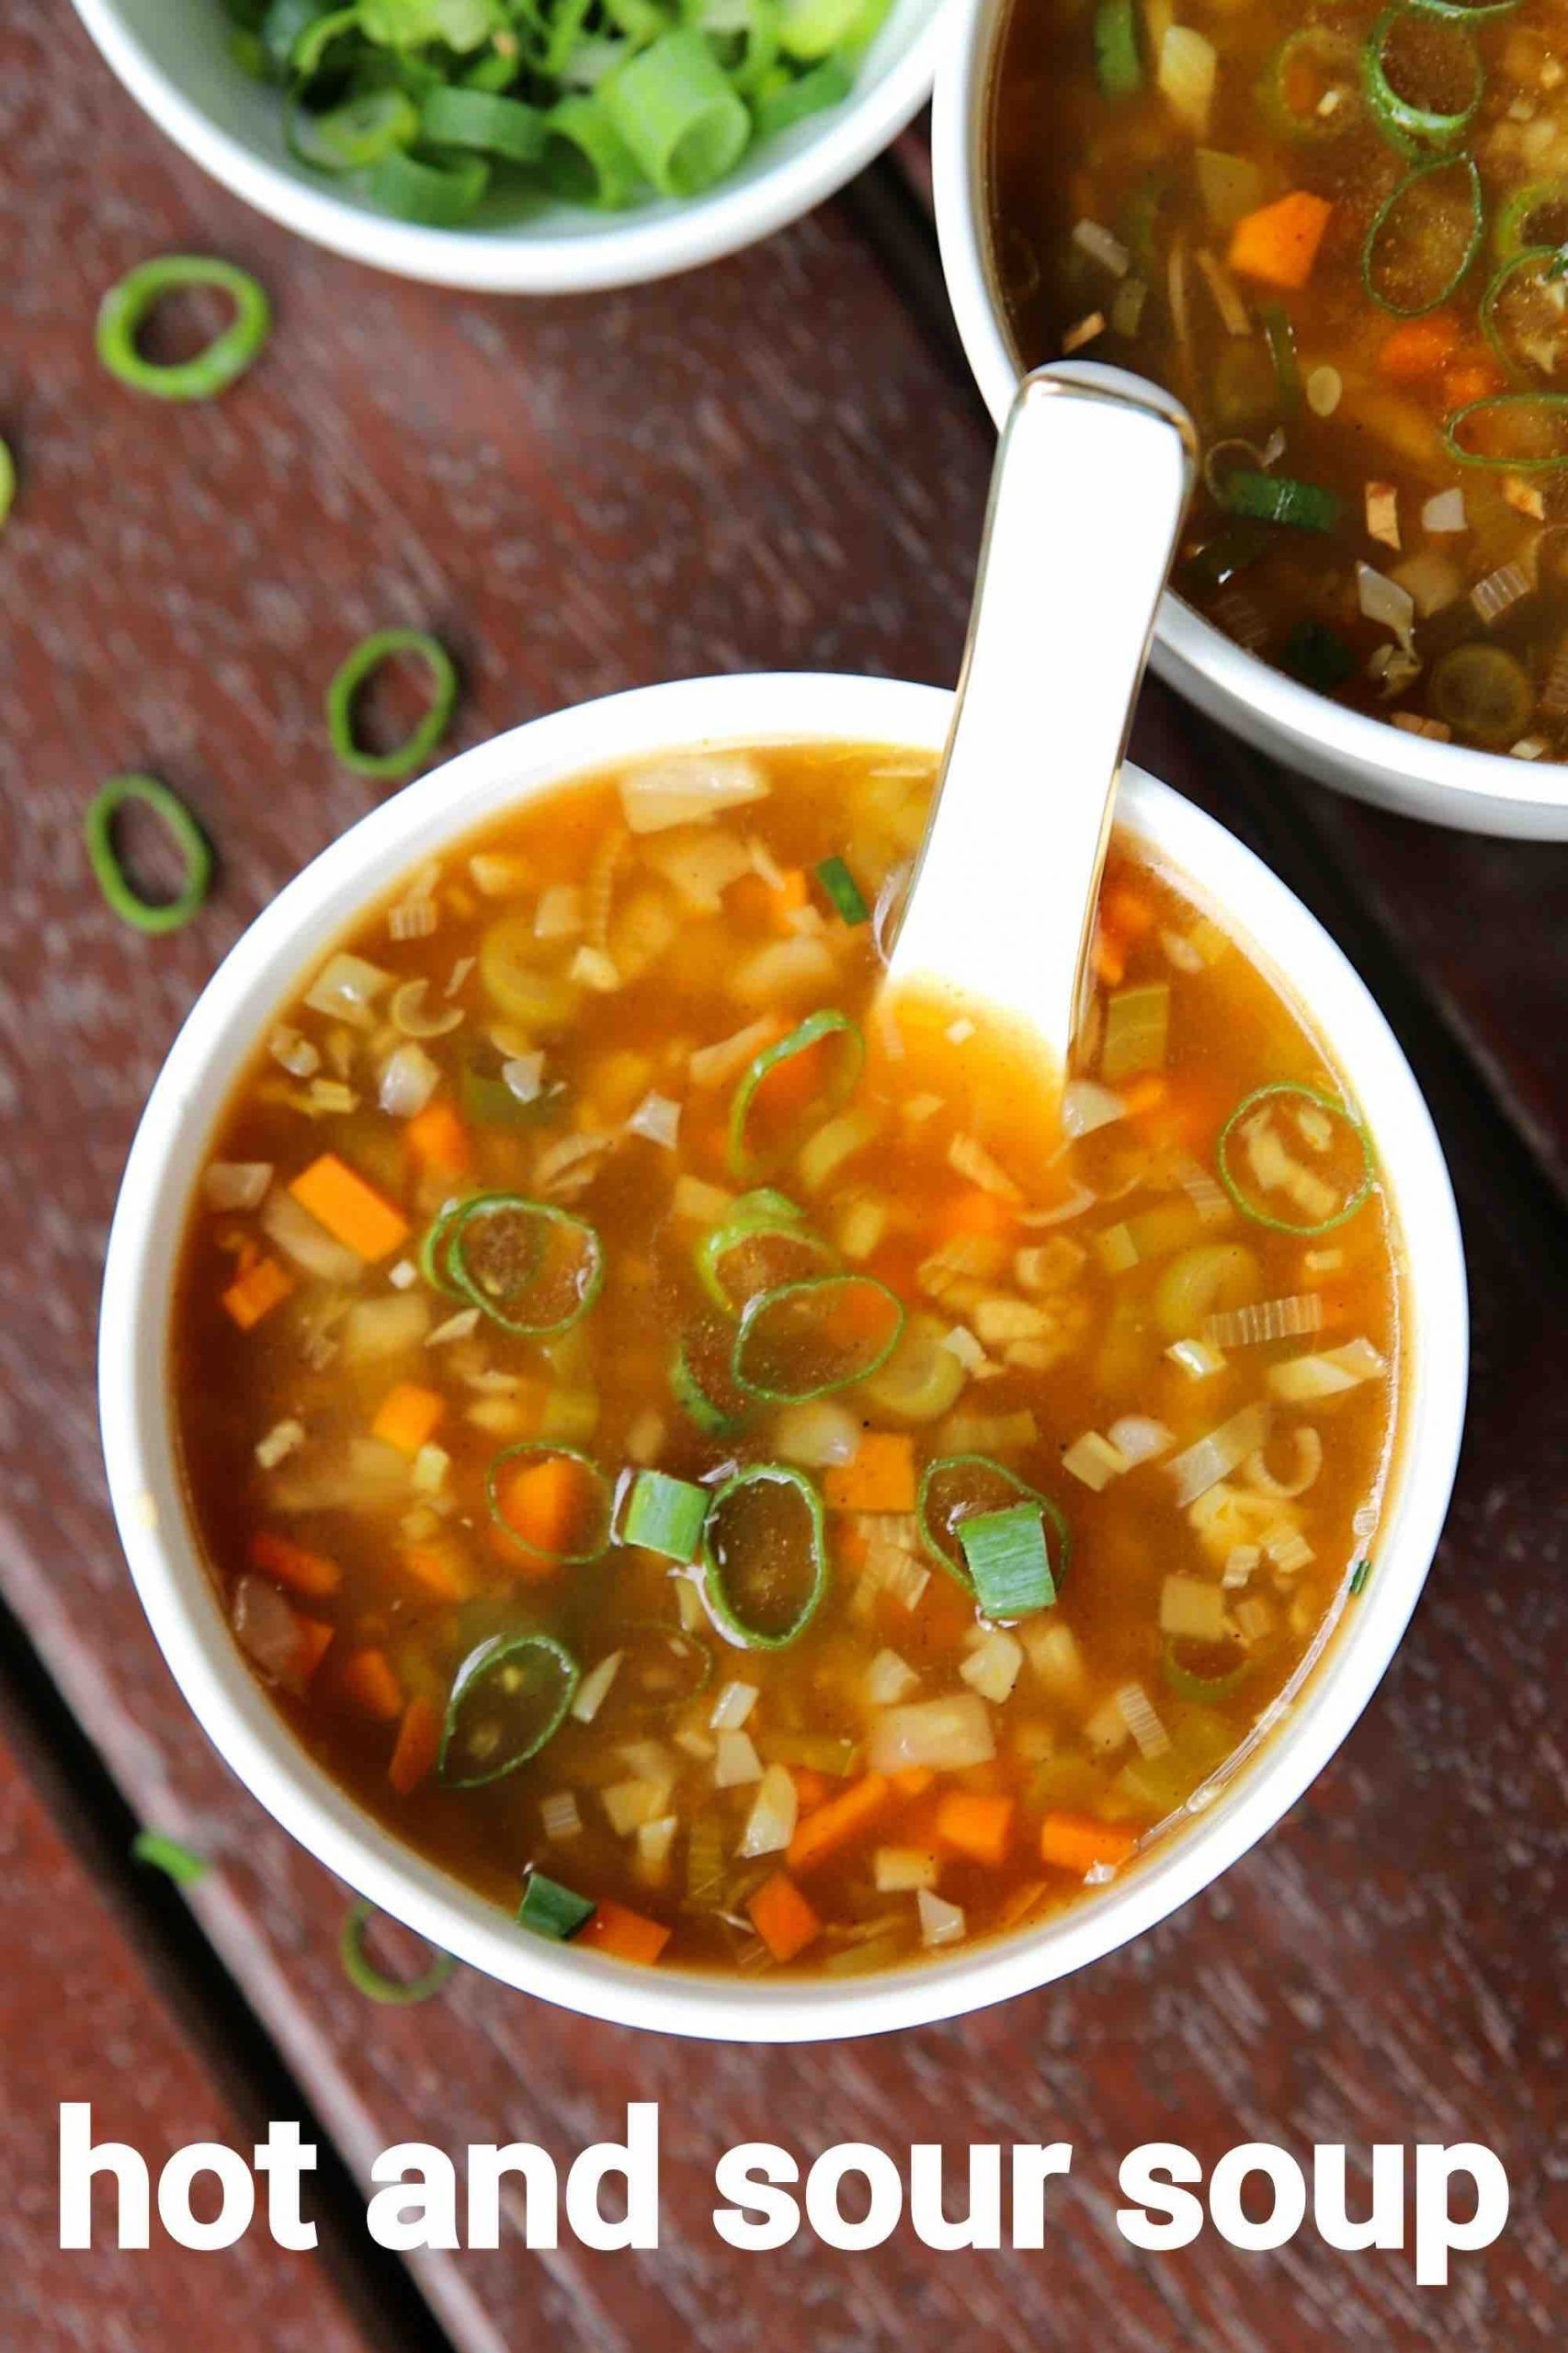 hot and sour soup recipe | hot n sour soup | hot s